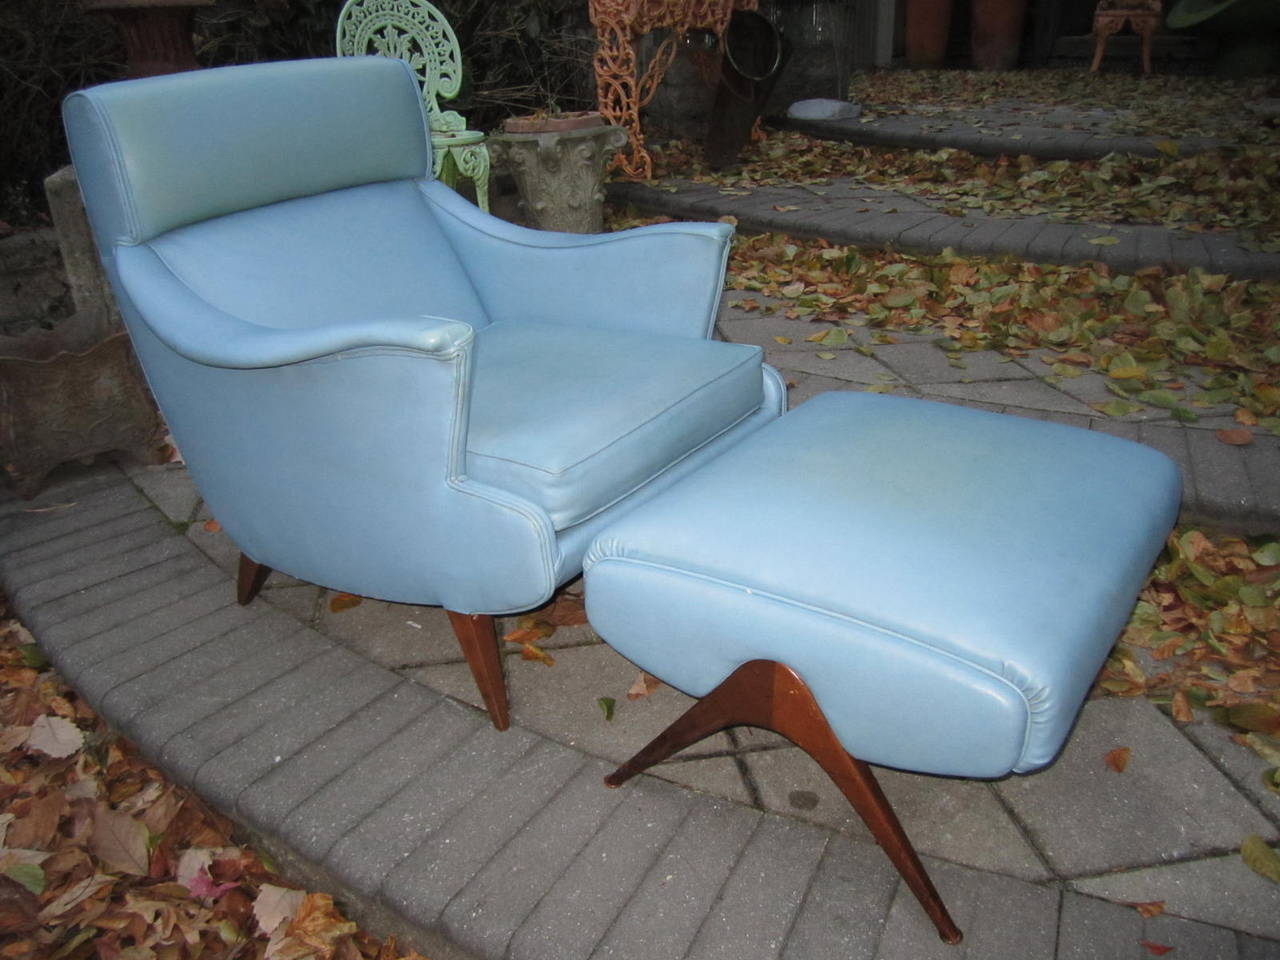 Exciting Mid-Century Modern lounge chair with matching ottoman. Wonderful swooping arms with a comfortable seat and back that leans back slightly. The ottoman actually makes the chair with its sculptural Space Age splayed walnut legs. Upholstered in